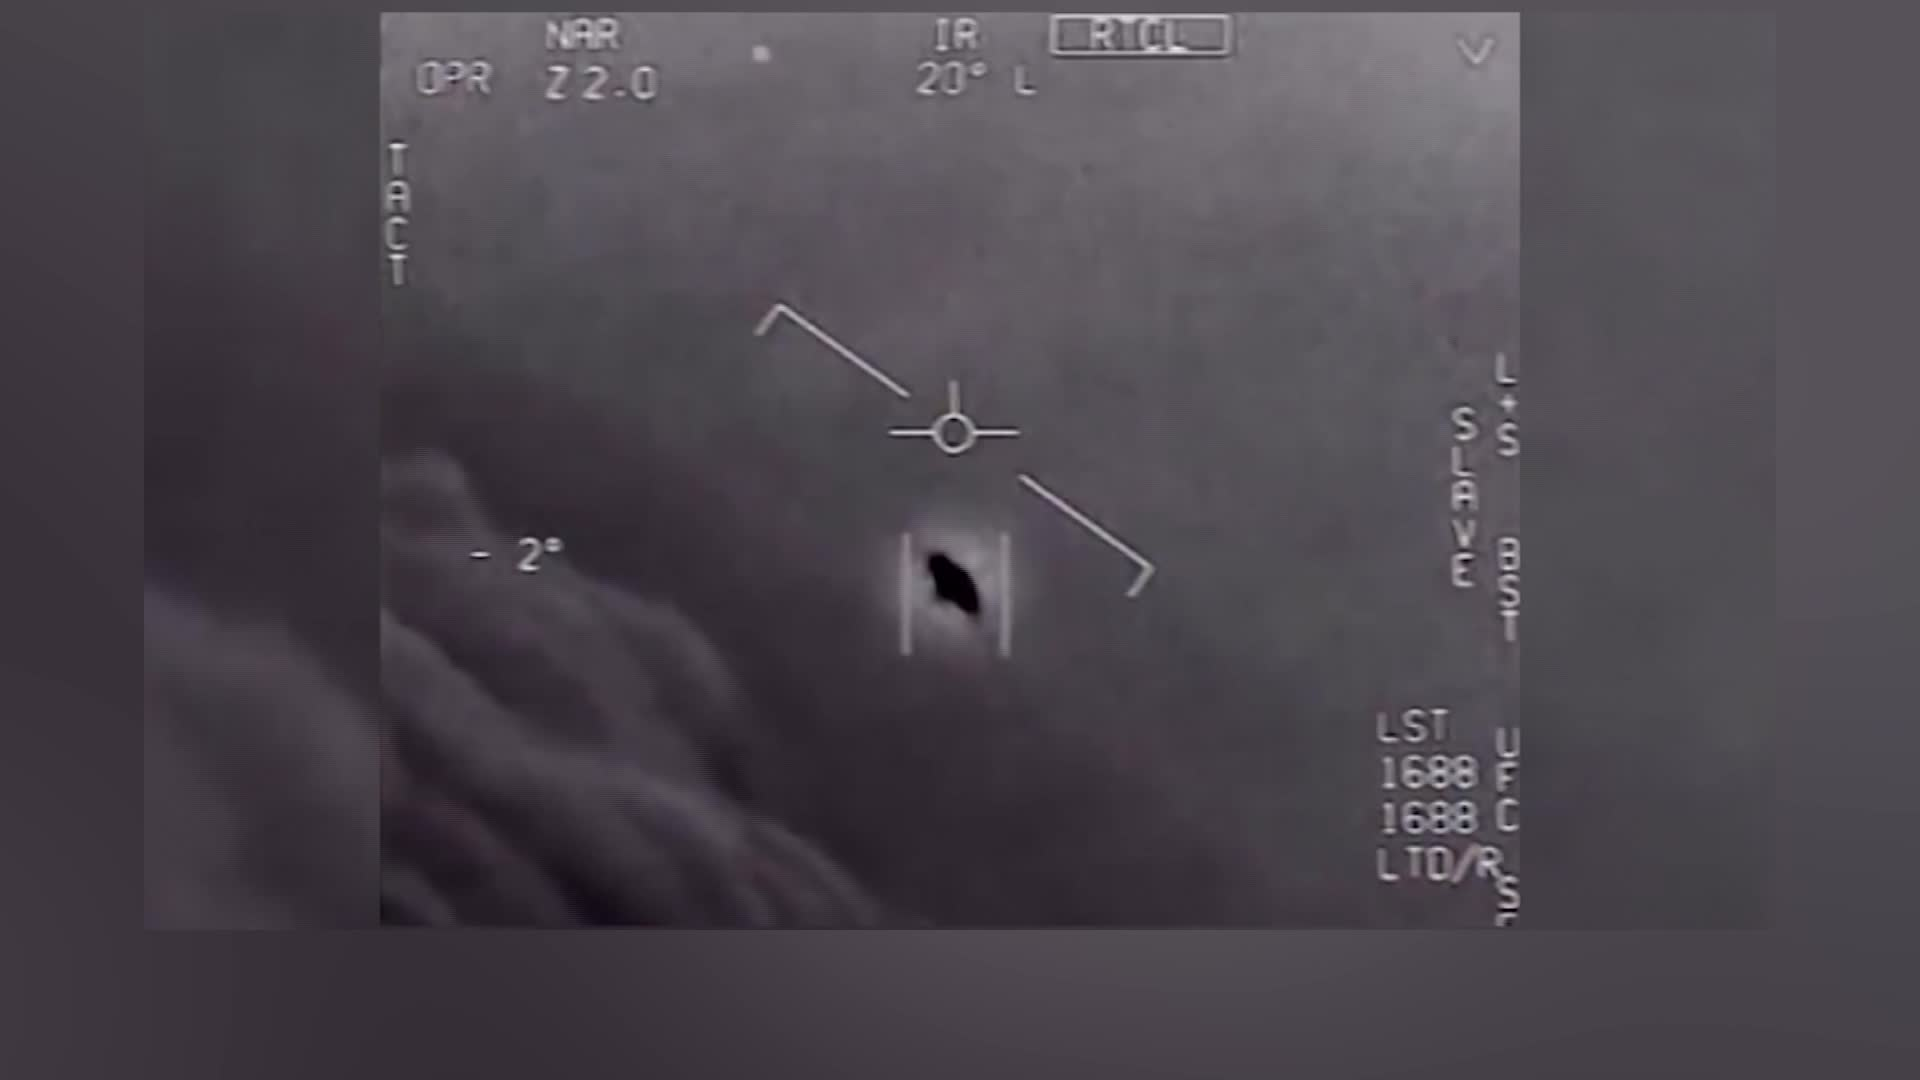 The Pentagon is forming a new task force to investigate UFOs that have been observed by US military aircraft, according to two defense officials. Credit: Defense Department